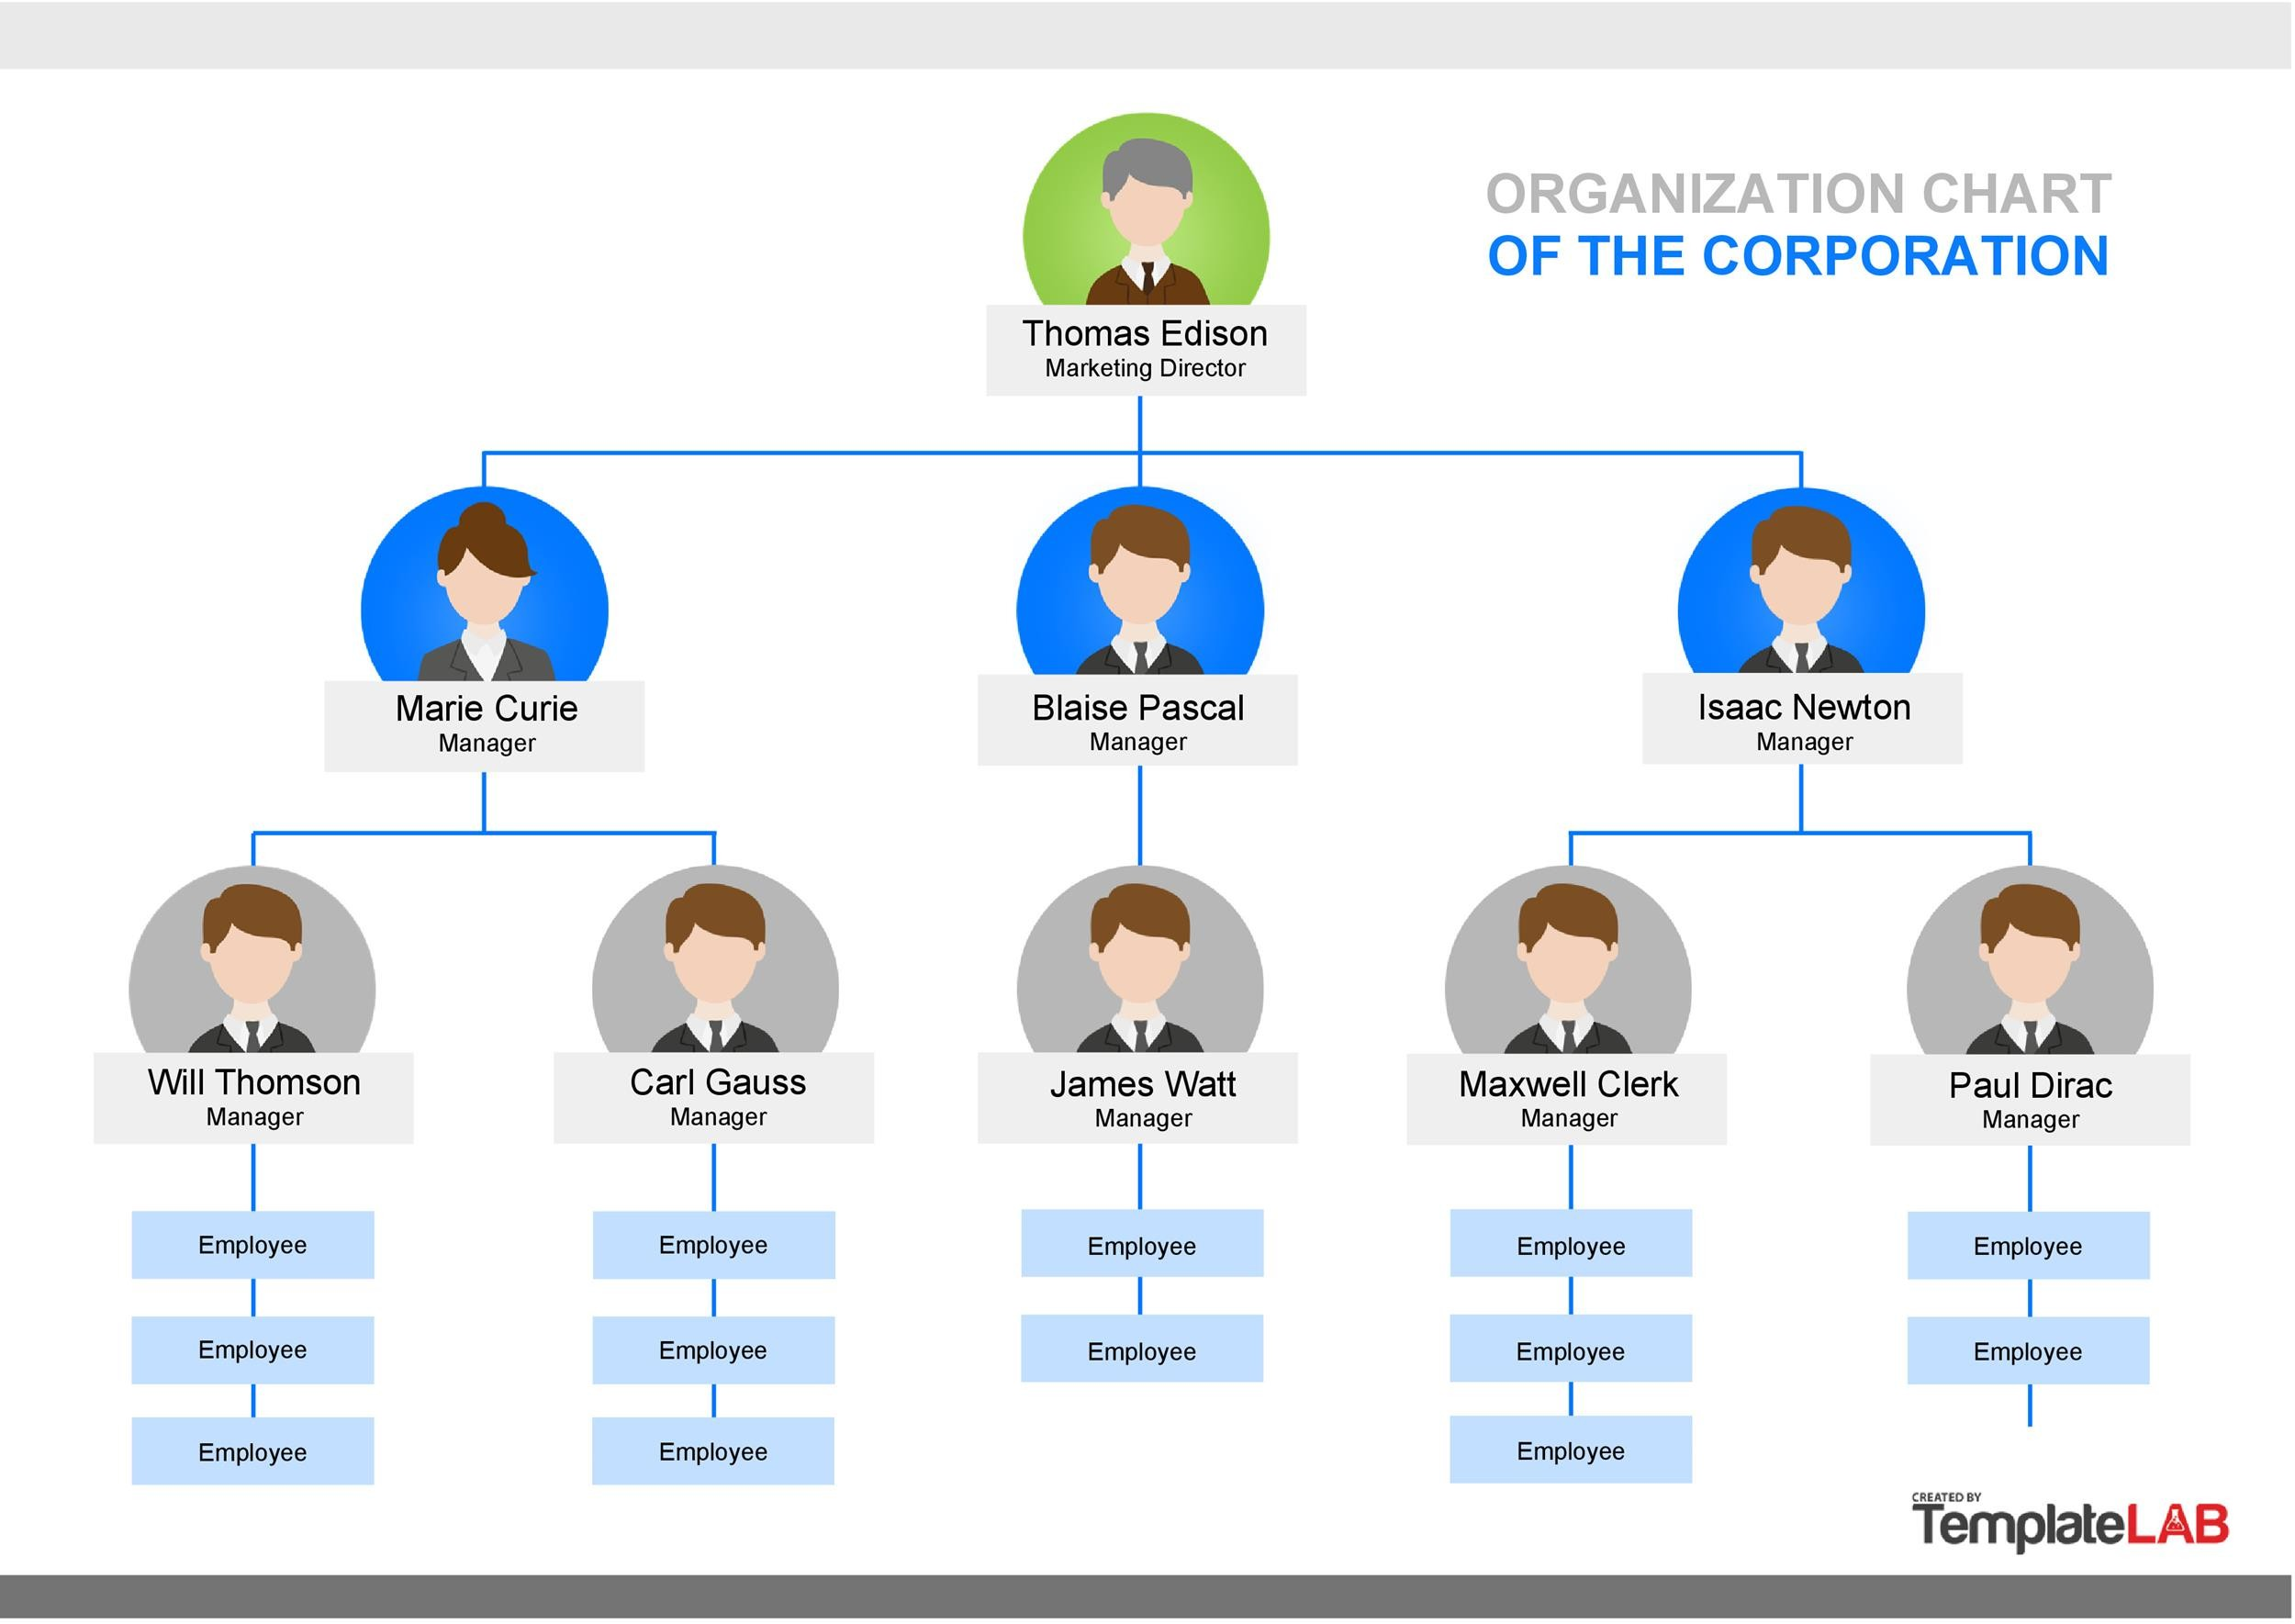 41 Organizational Chart Templates Word Excel Powerpoint Psd